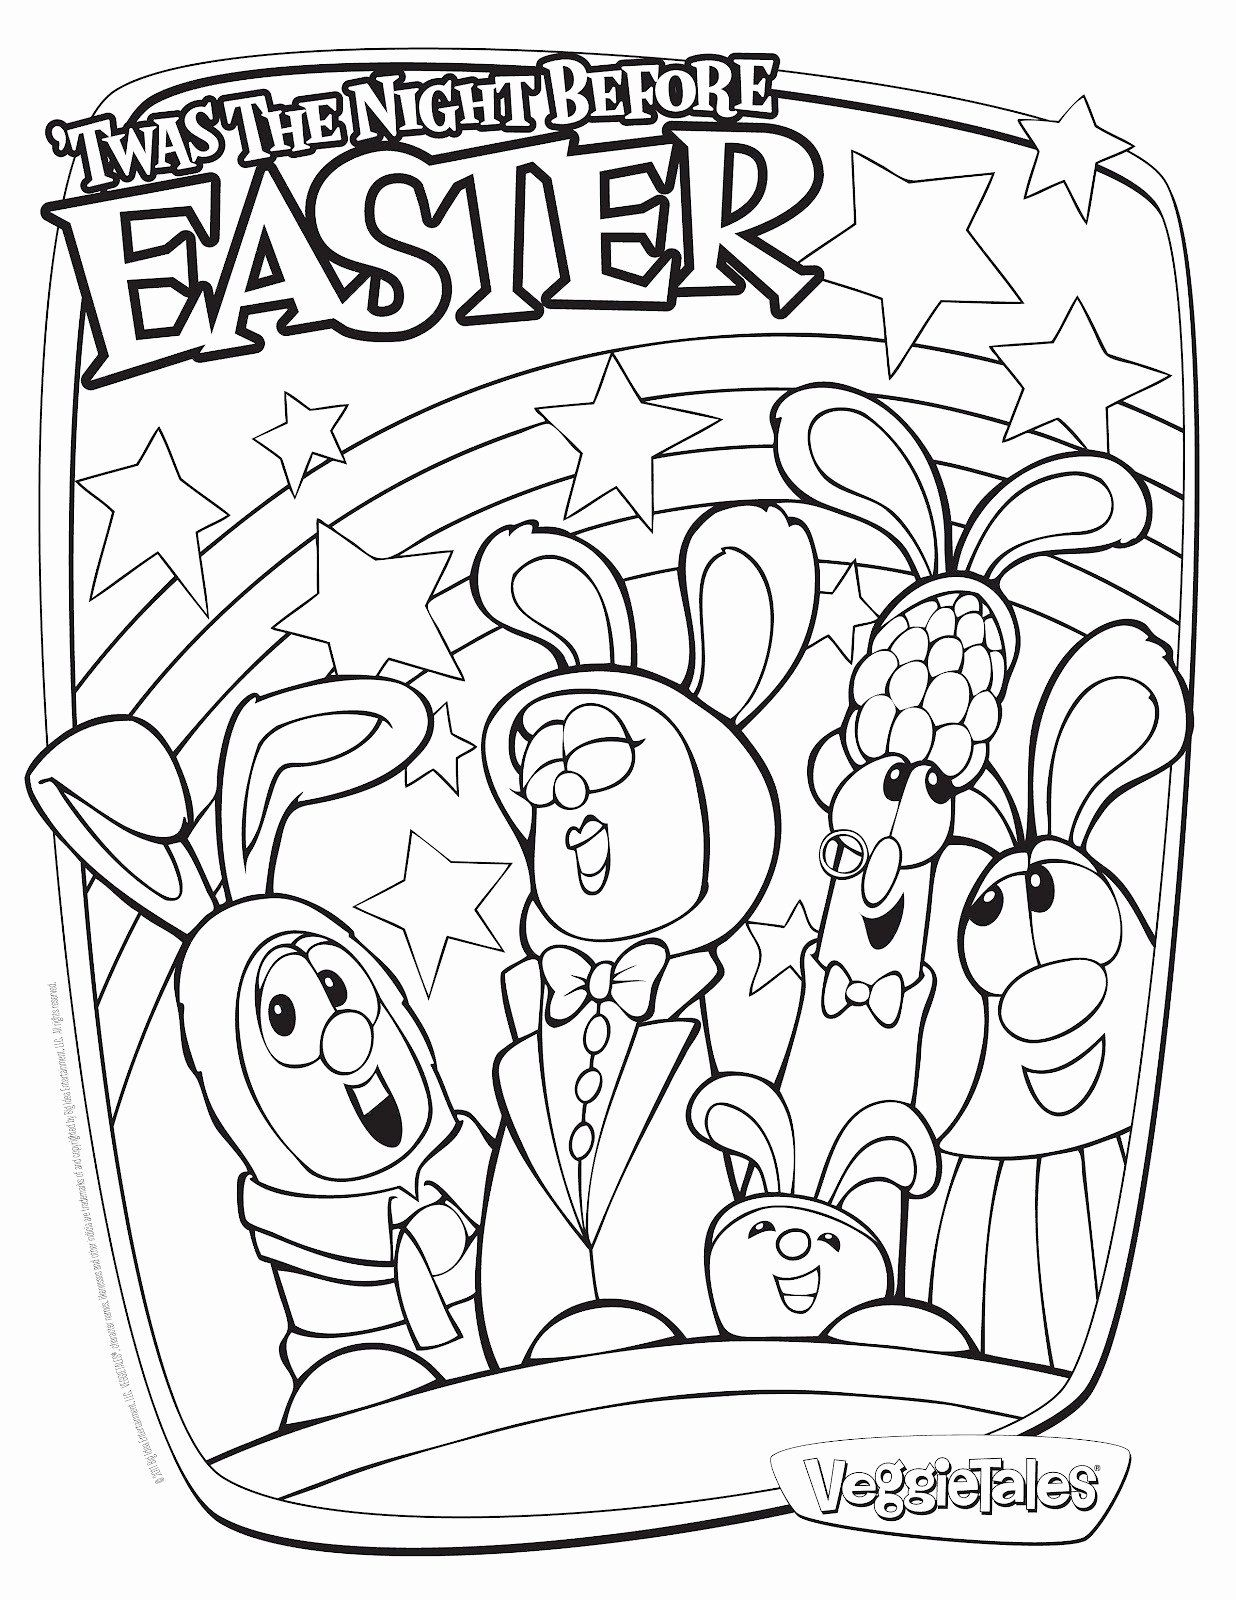 Johnny Appleseed Coloring Sheet Di